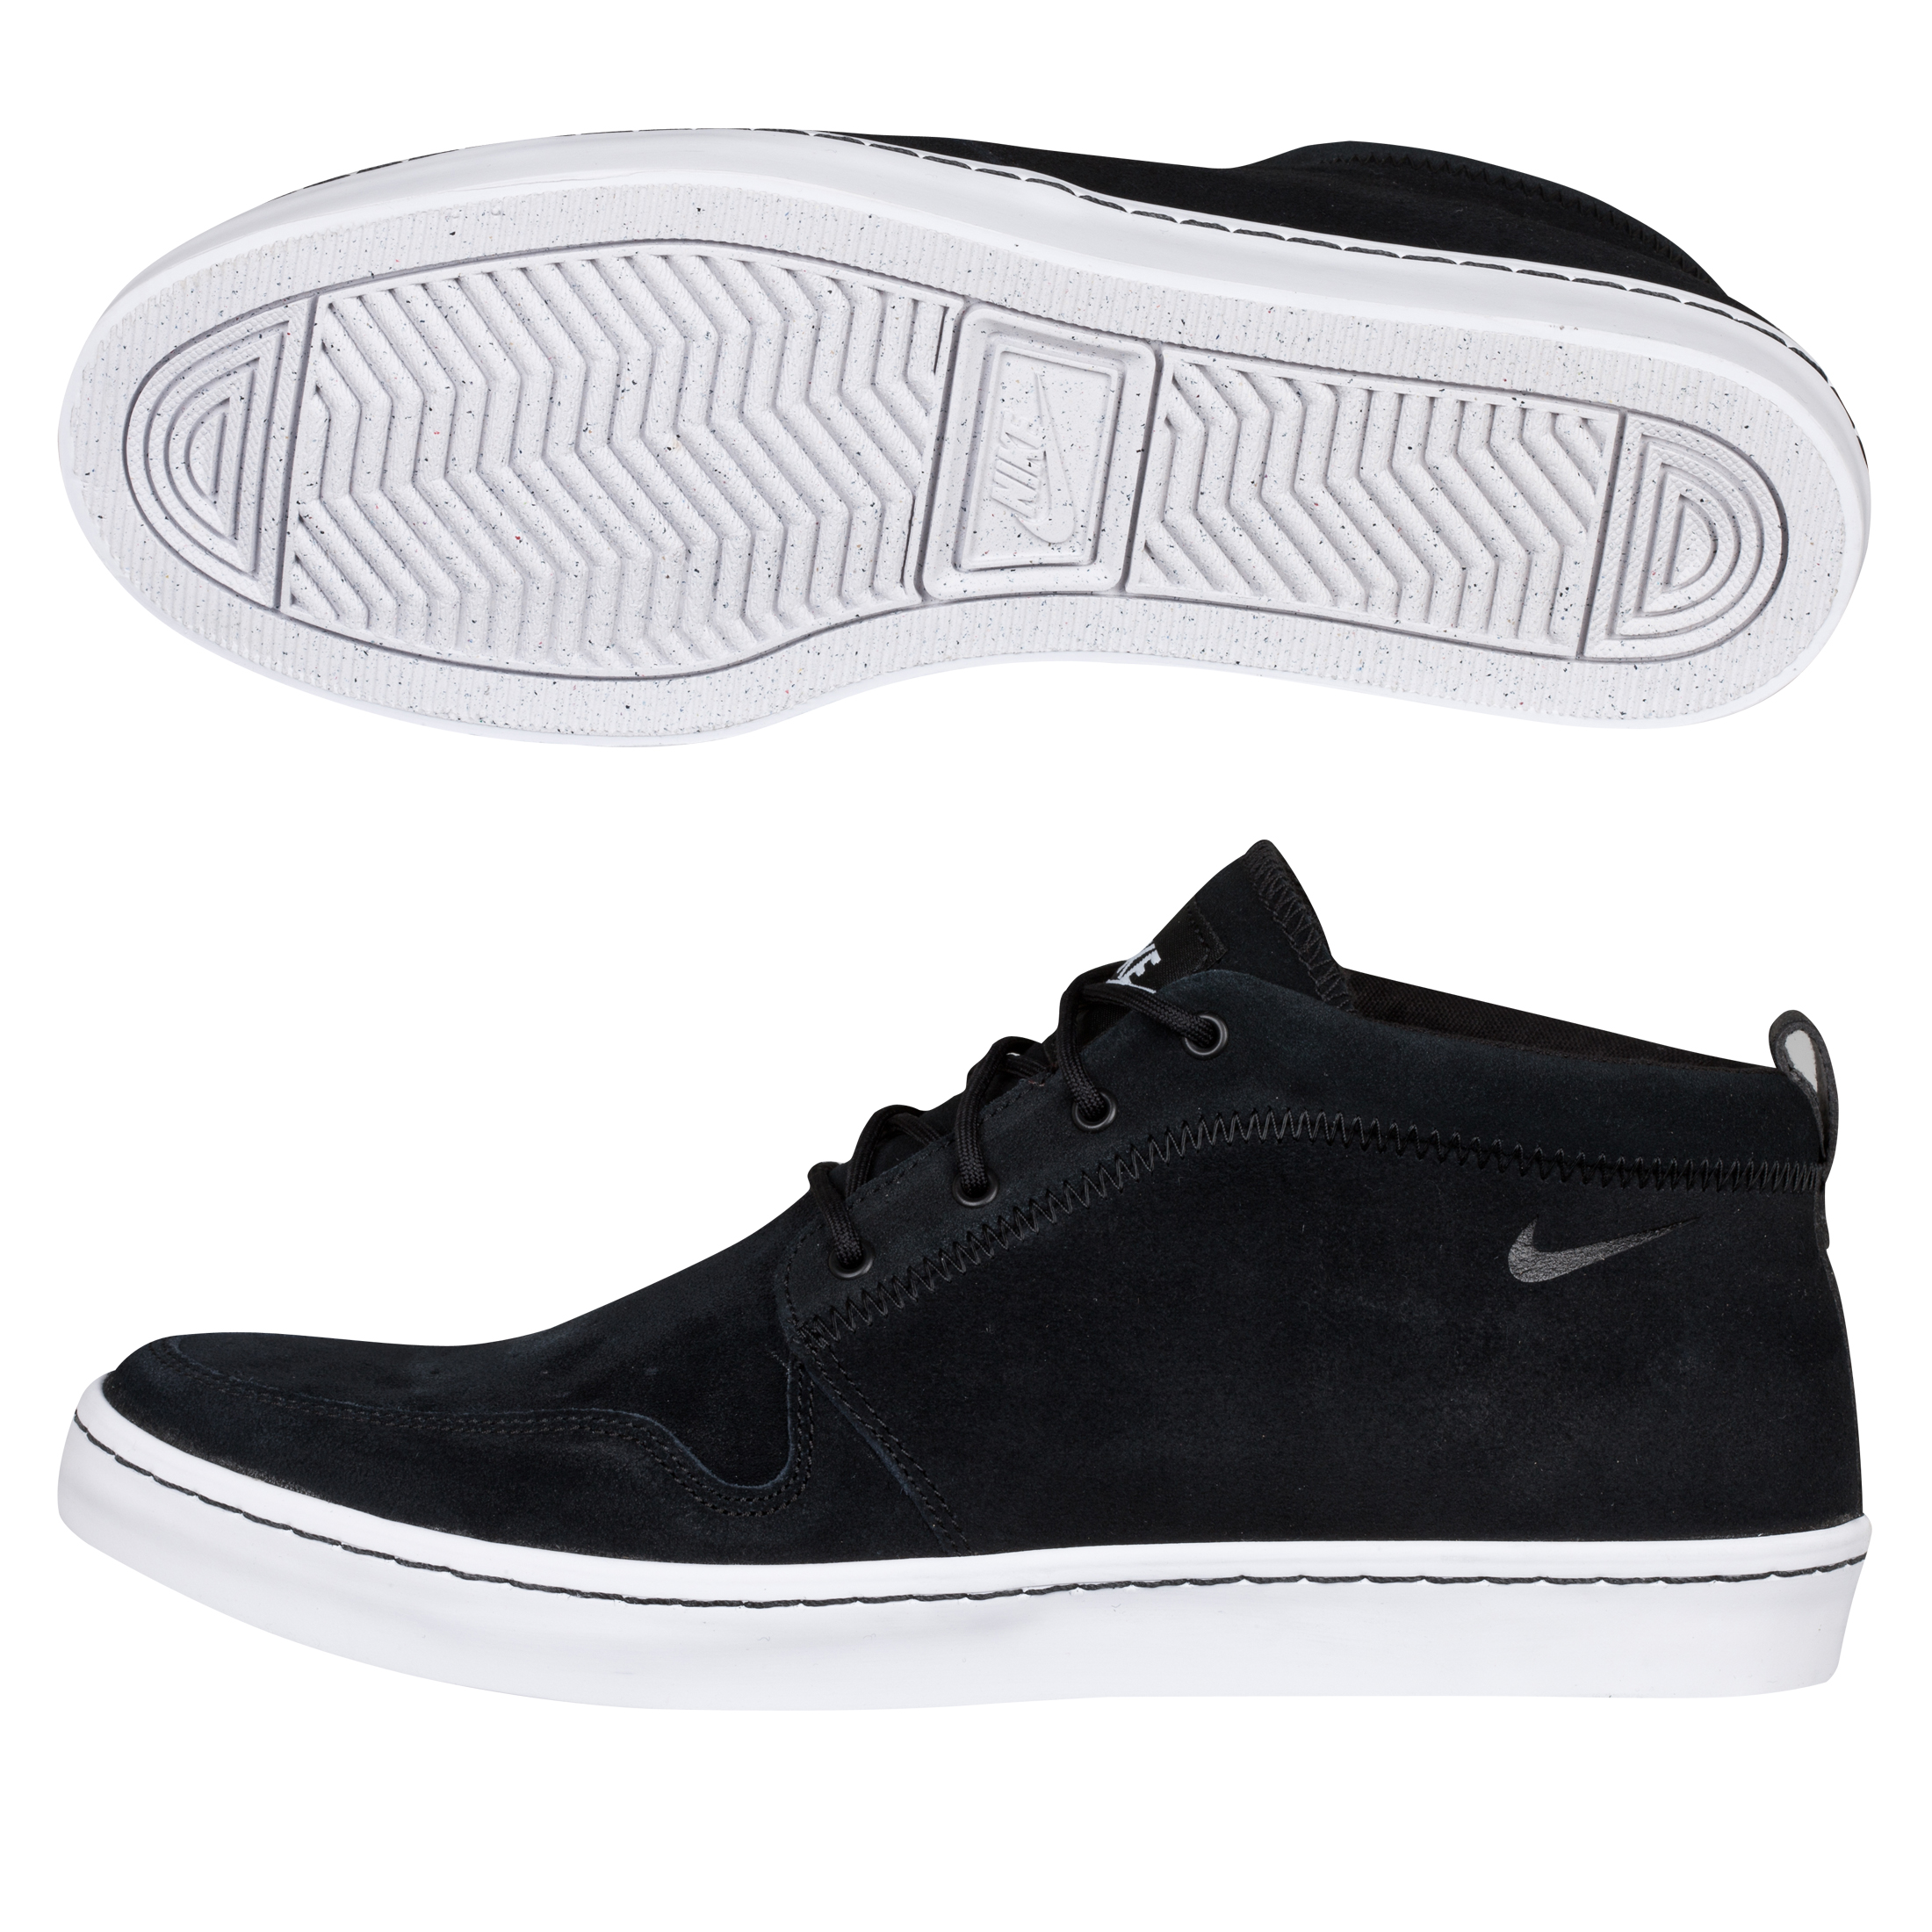 Nike Wardour Chukka Trainers - Black/White